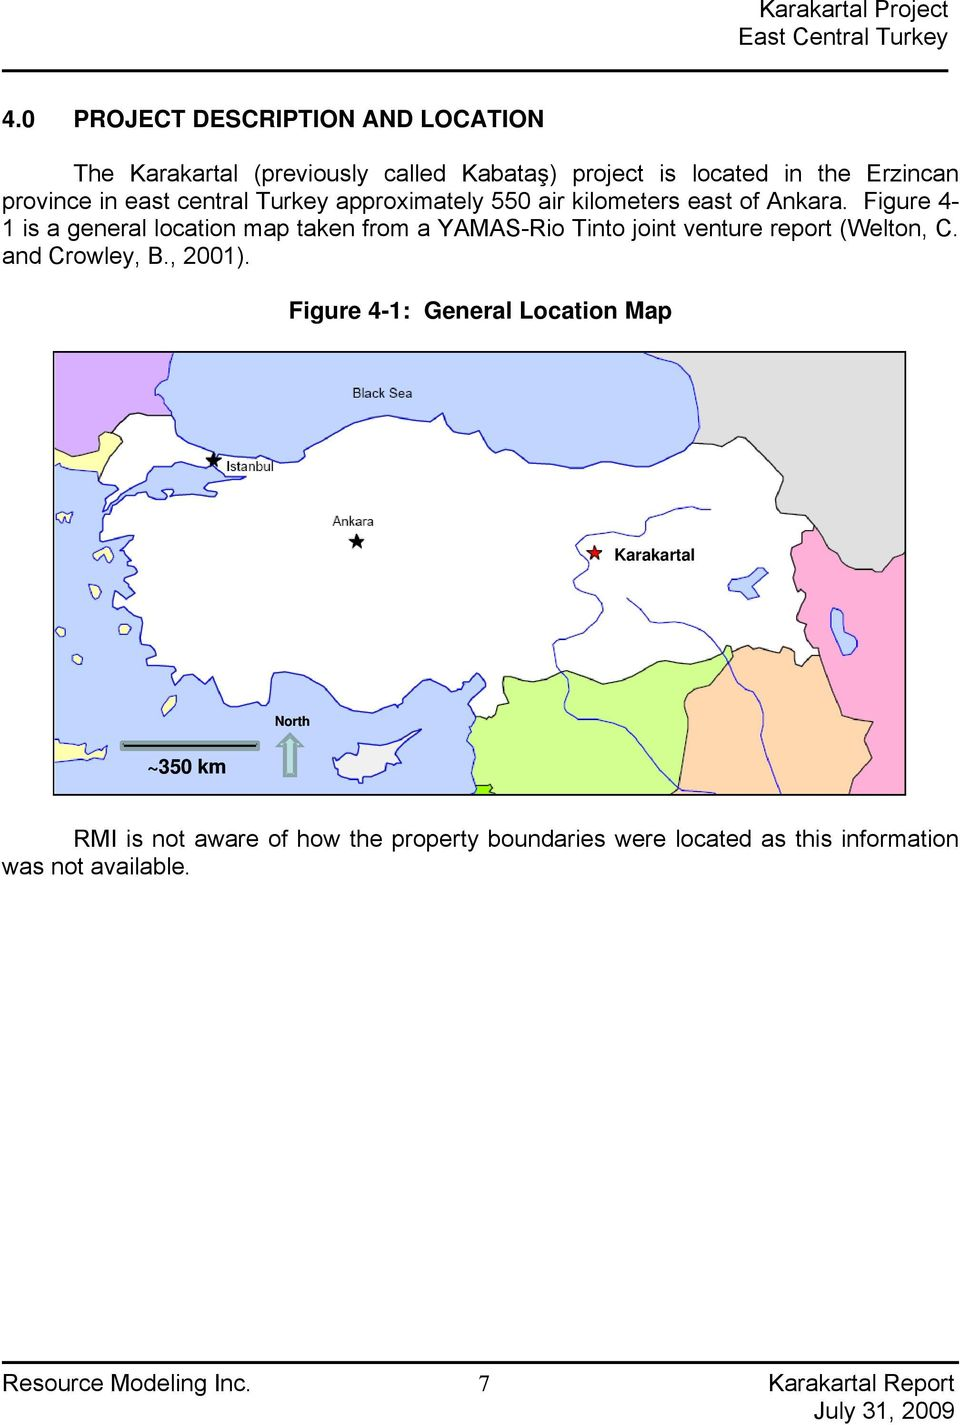 Figure 4-1 is a general location map taken from a YAMAS-Rio Tinto joint venture report (Welton, C. and Crowley, B., 21).